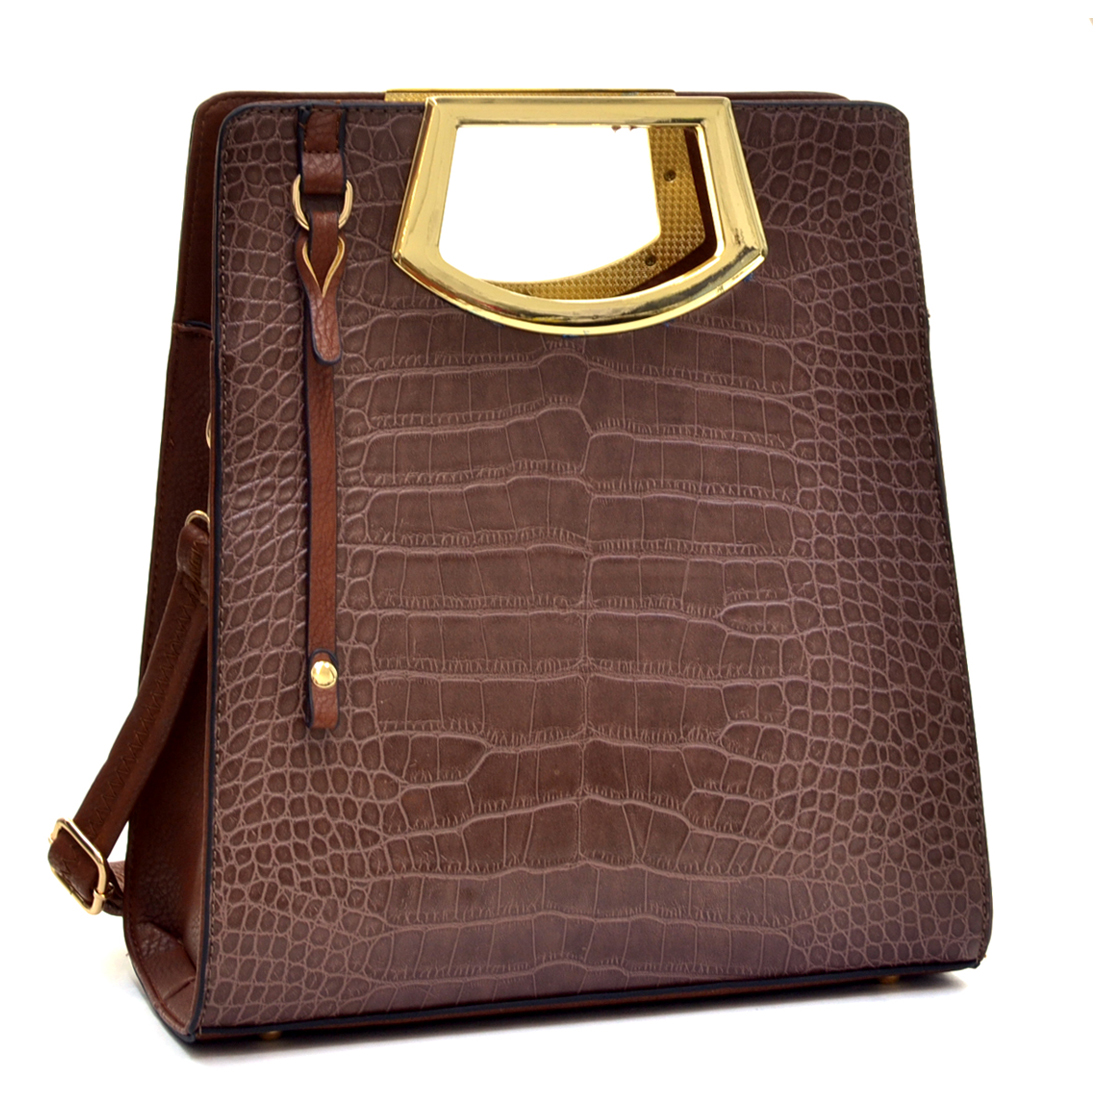 Tall Structured Croc Tote with Frame handles